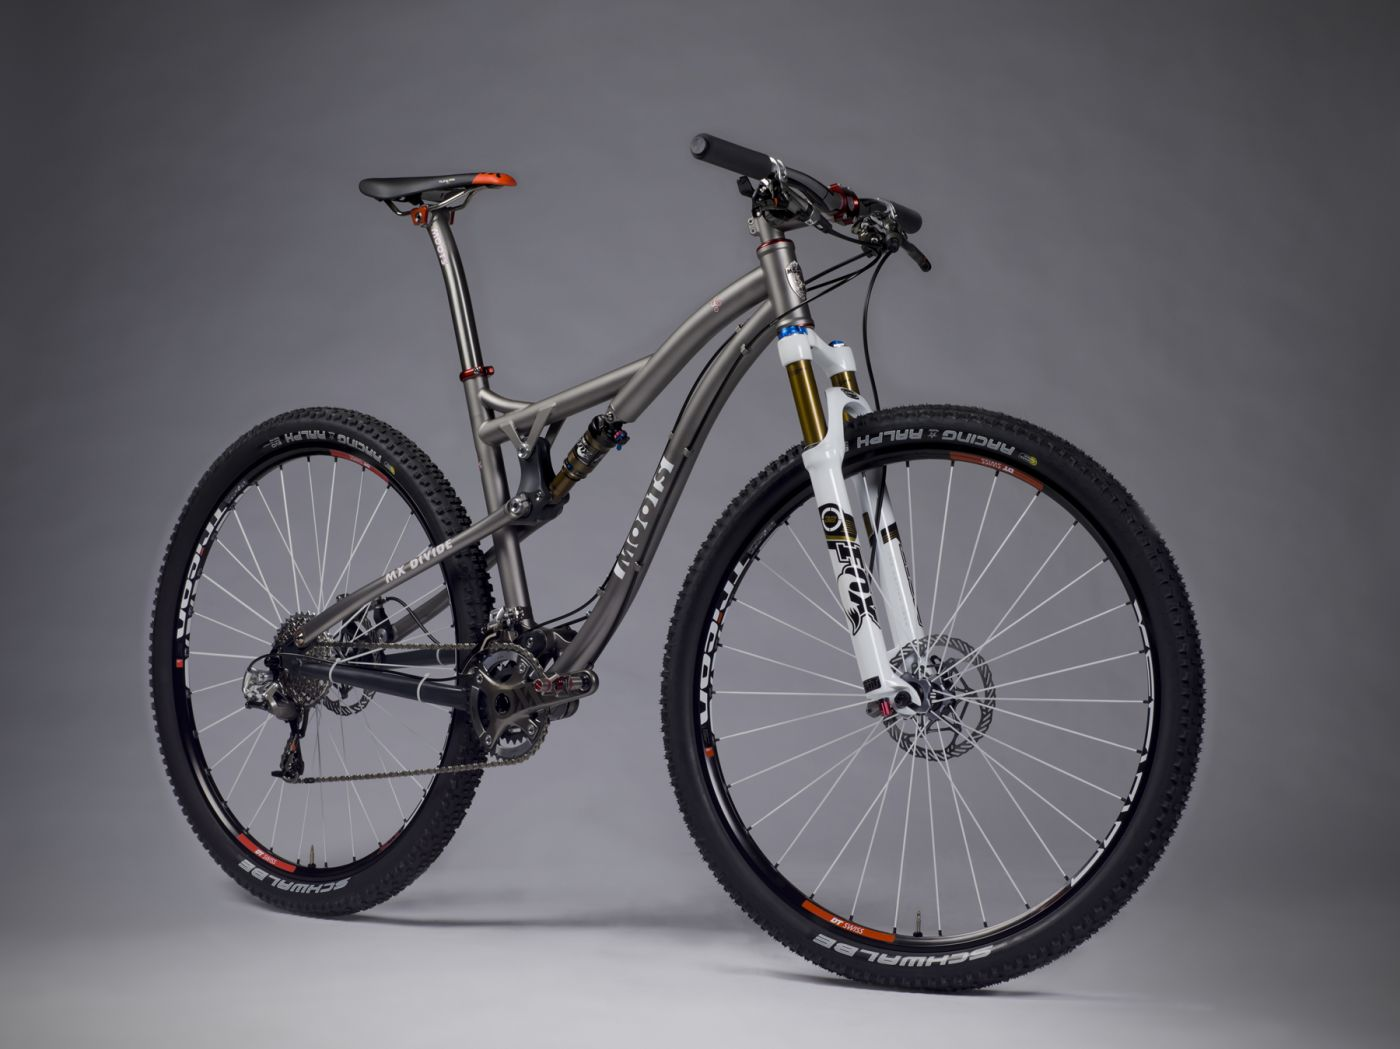 moots mx divide titanium full suspension 29er goodness. Black Bedroom Furniture Sets. Home Design Ideas